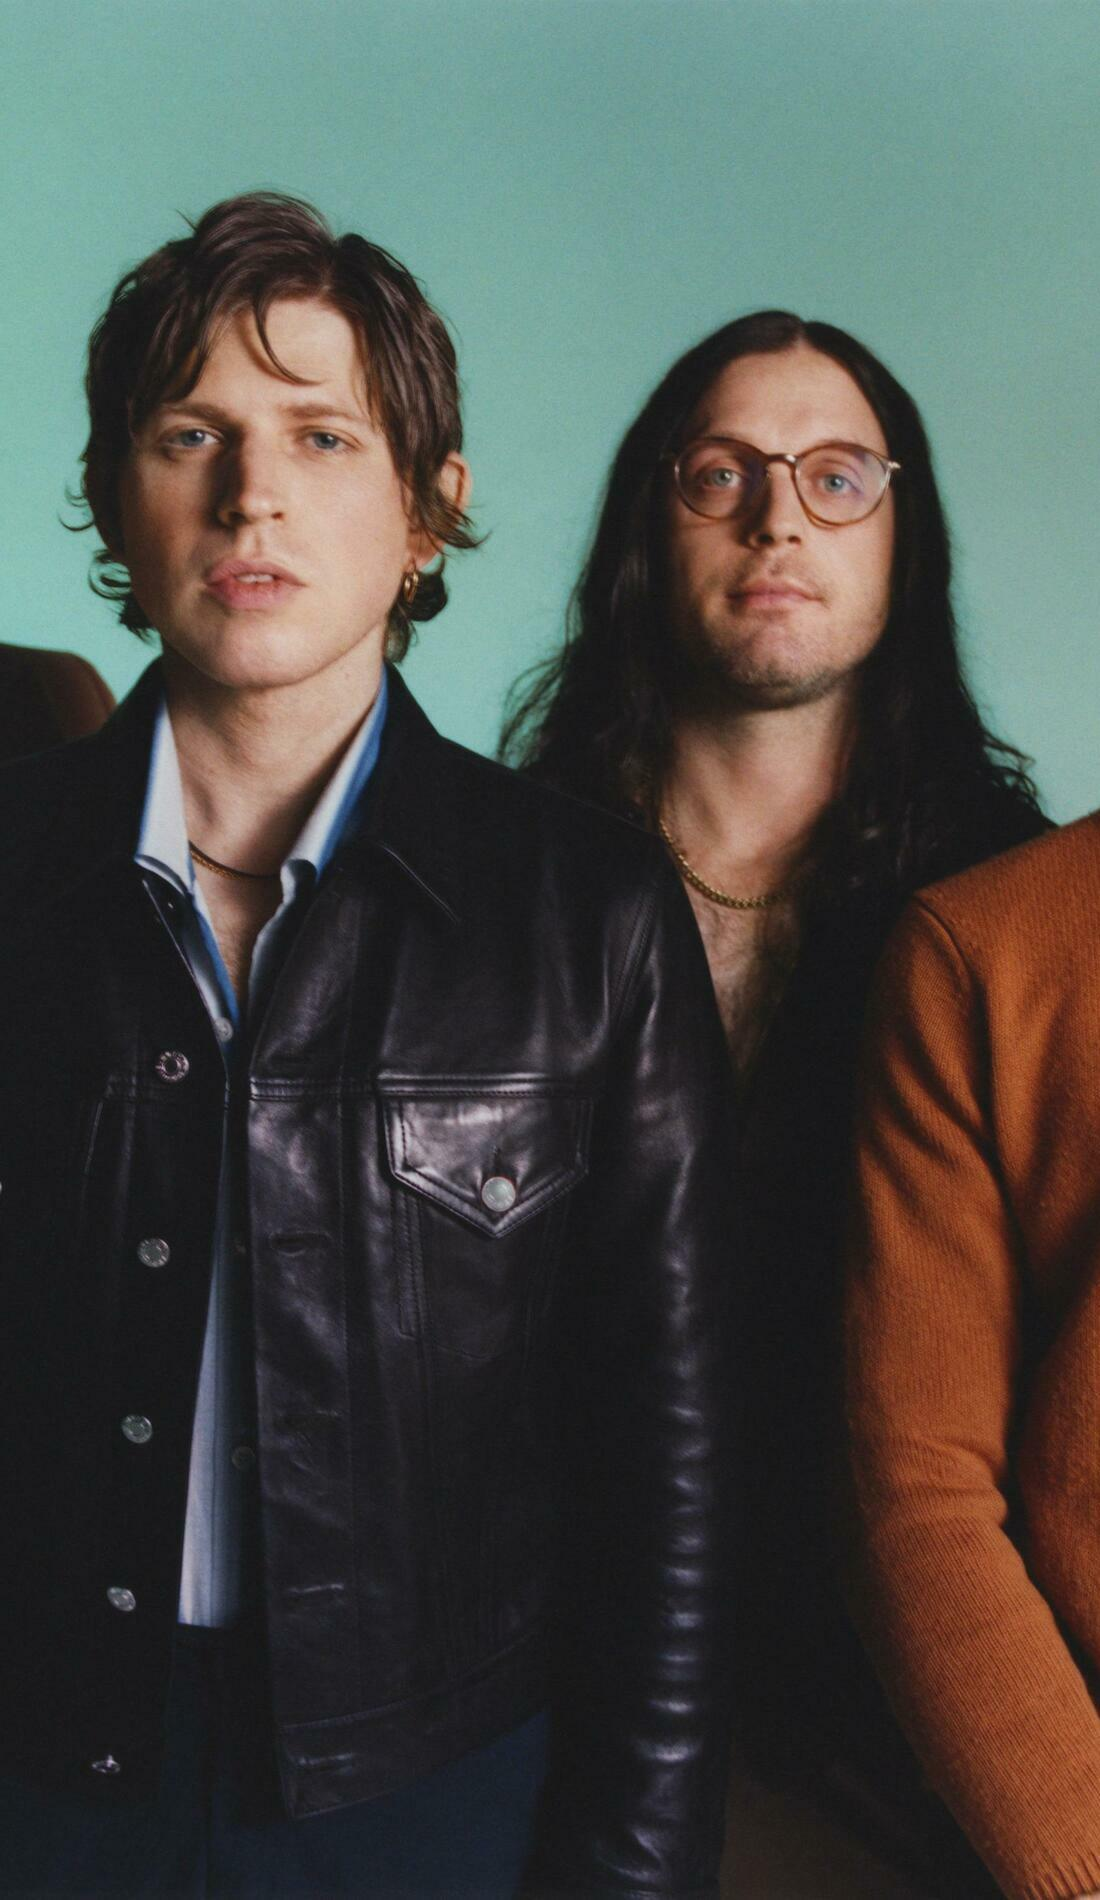 A Kings Of Leon live event